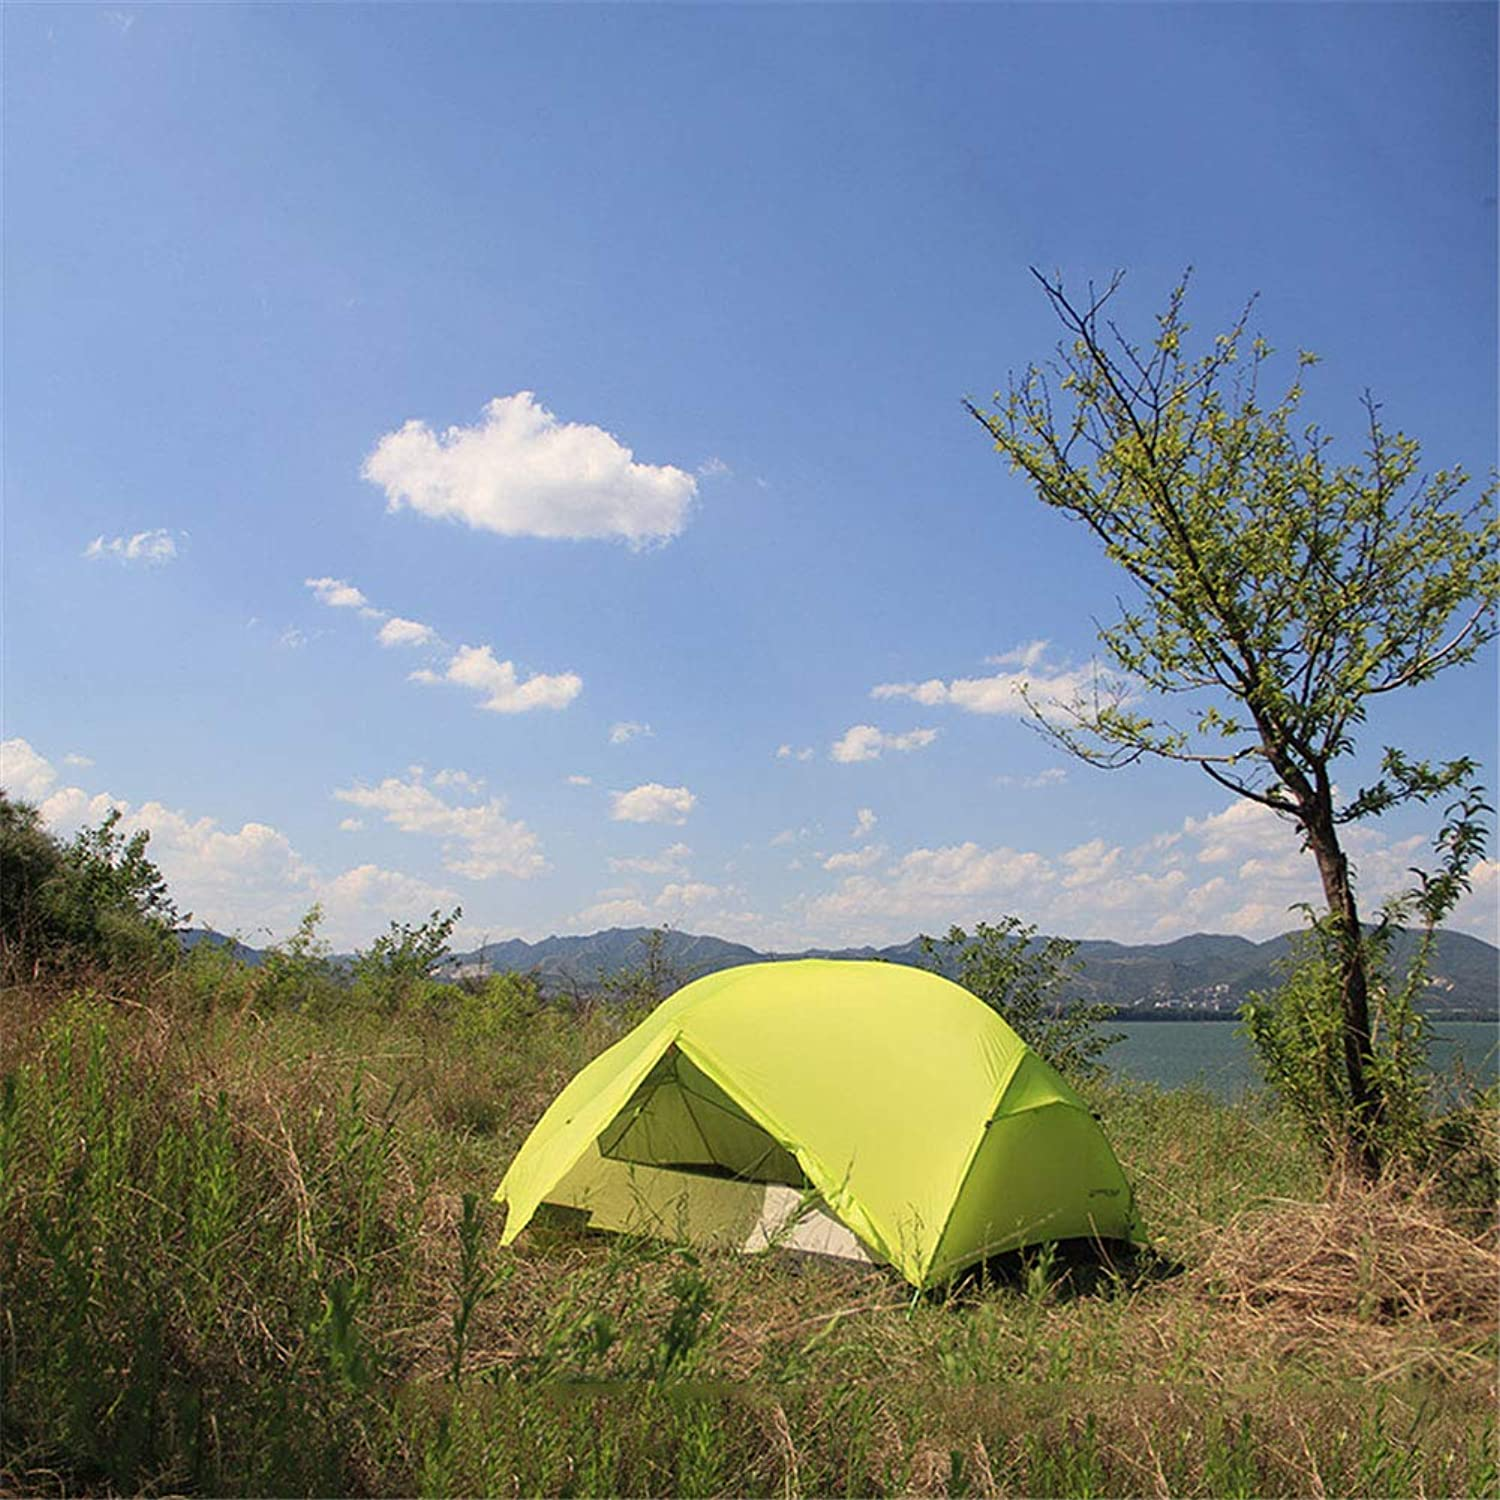 AntiUV,SpaciousTent, 2 Person Camping Tents Outdoor Ultralight Waterproof Double Layer 3 Seasons Hiking Travel Tent